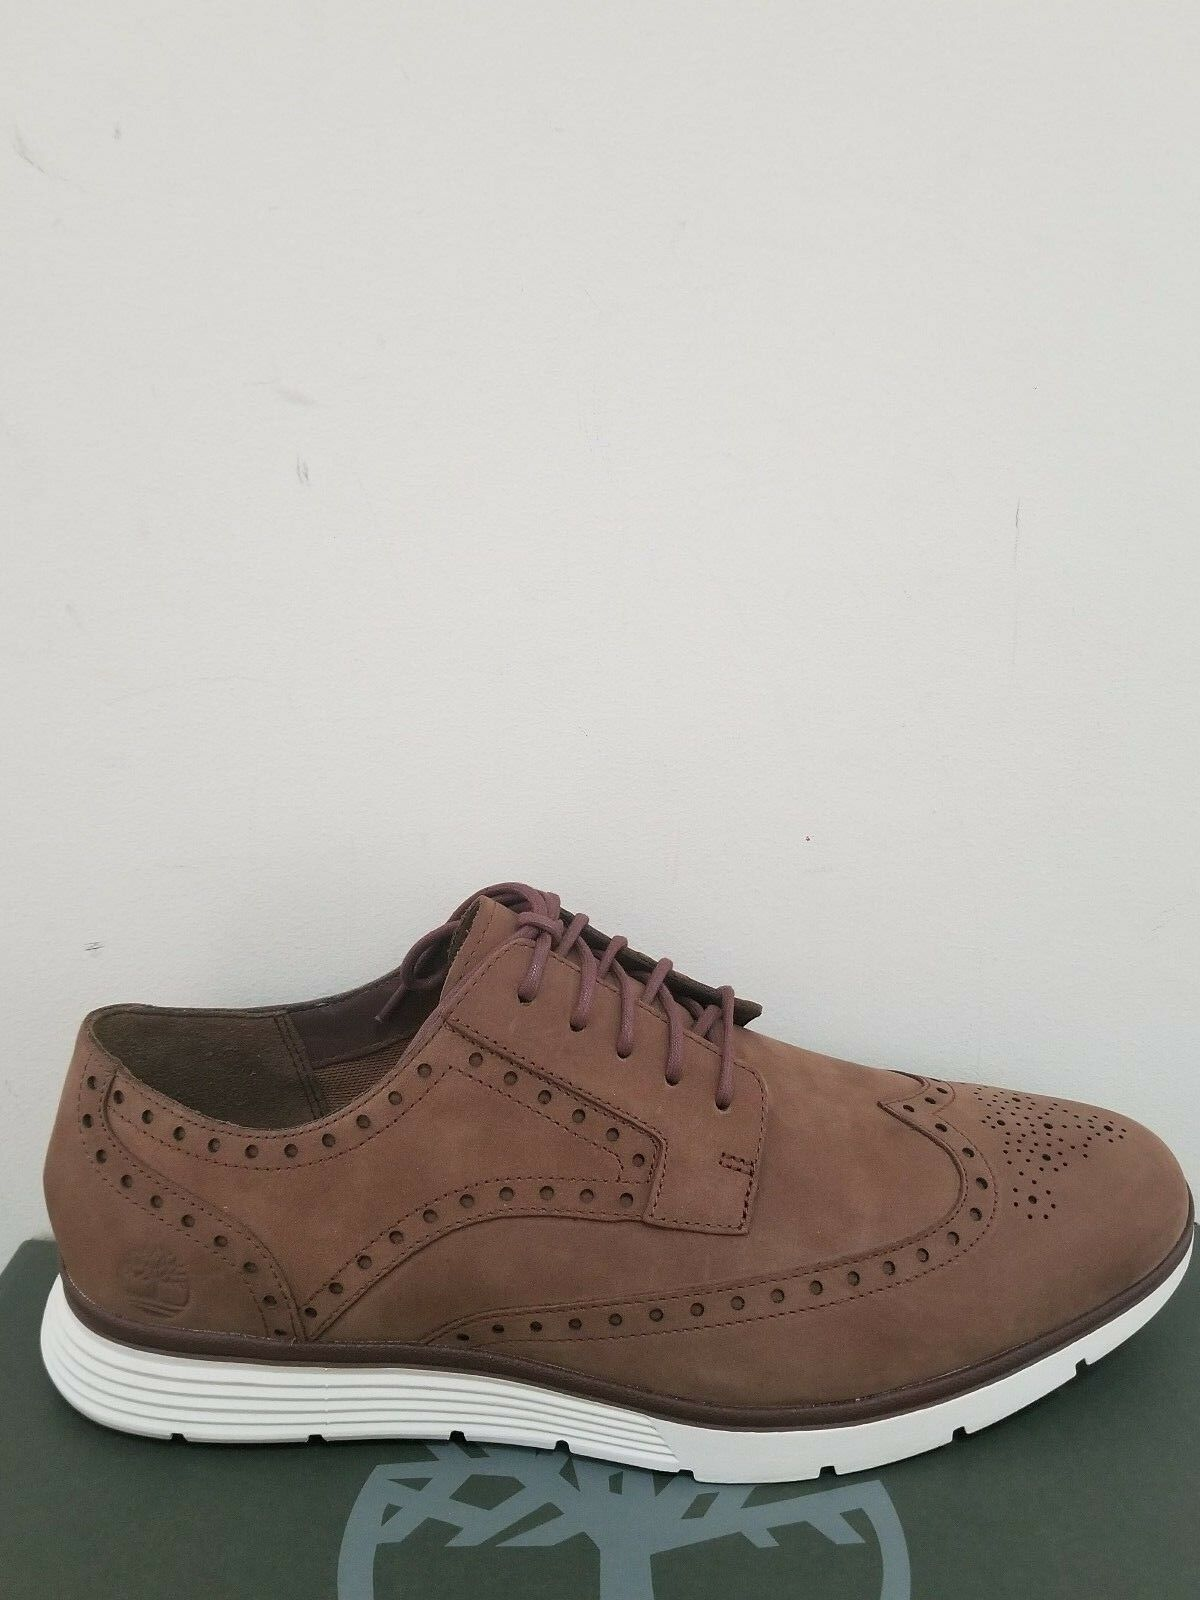 Timberland Men's  Franklin   Park Brogue  Oxford  ShoesNIB